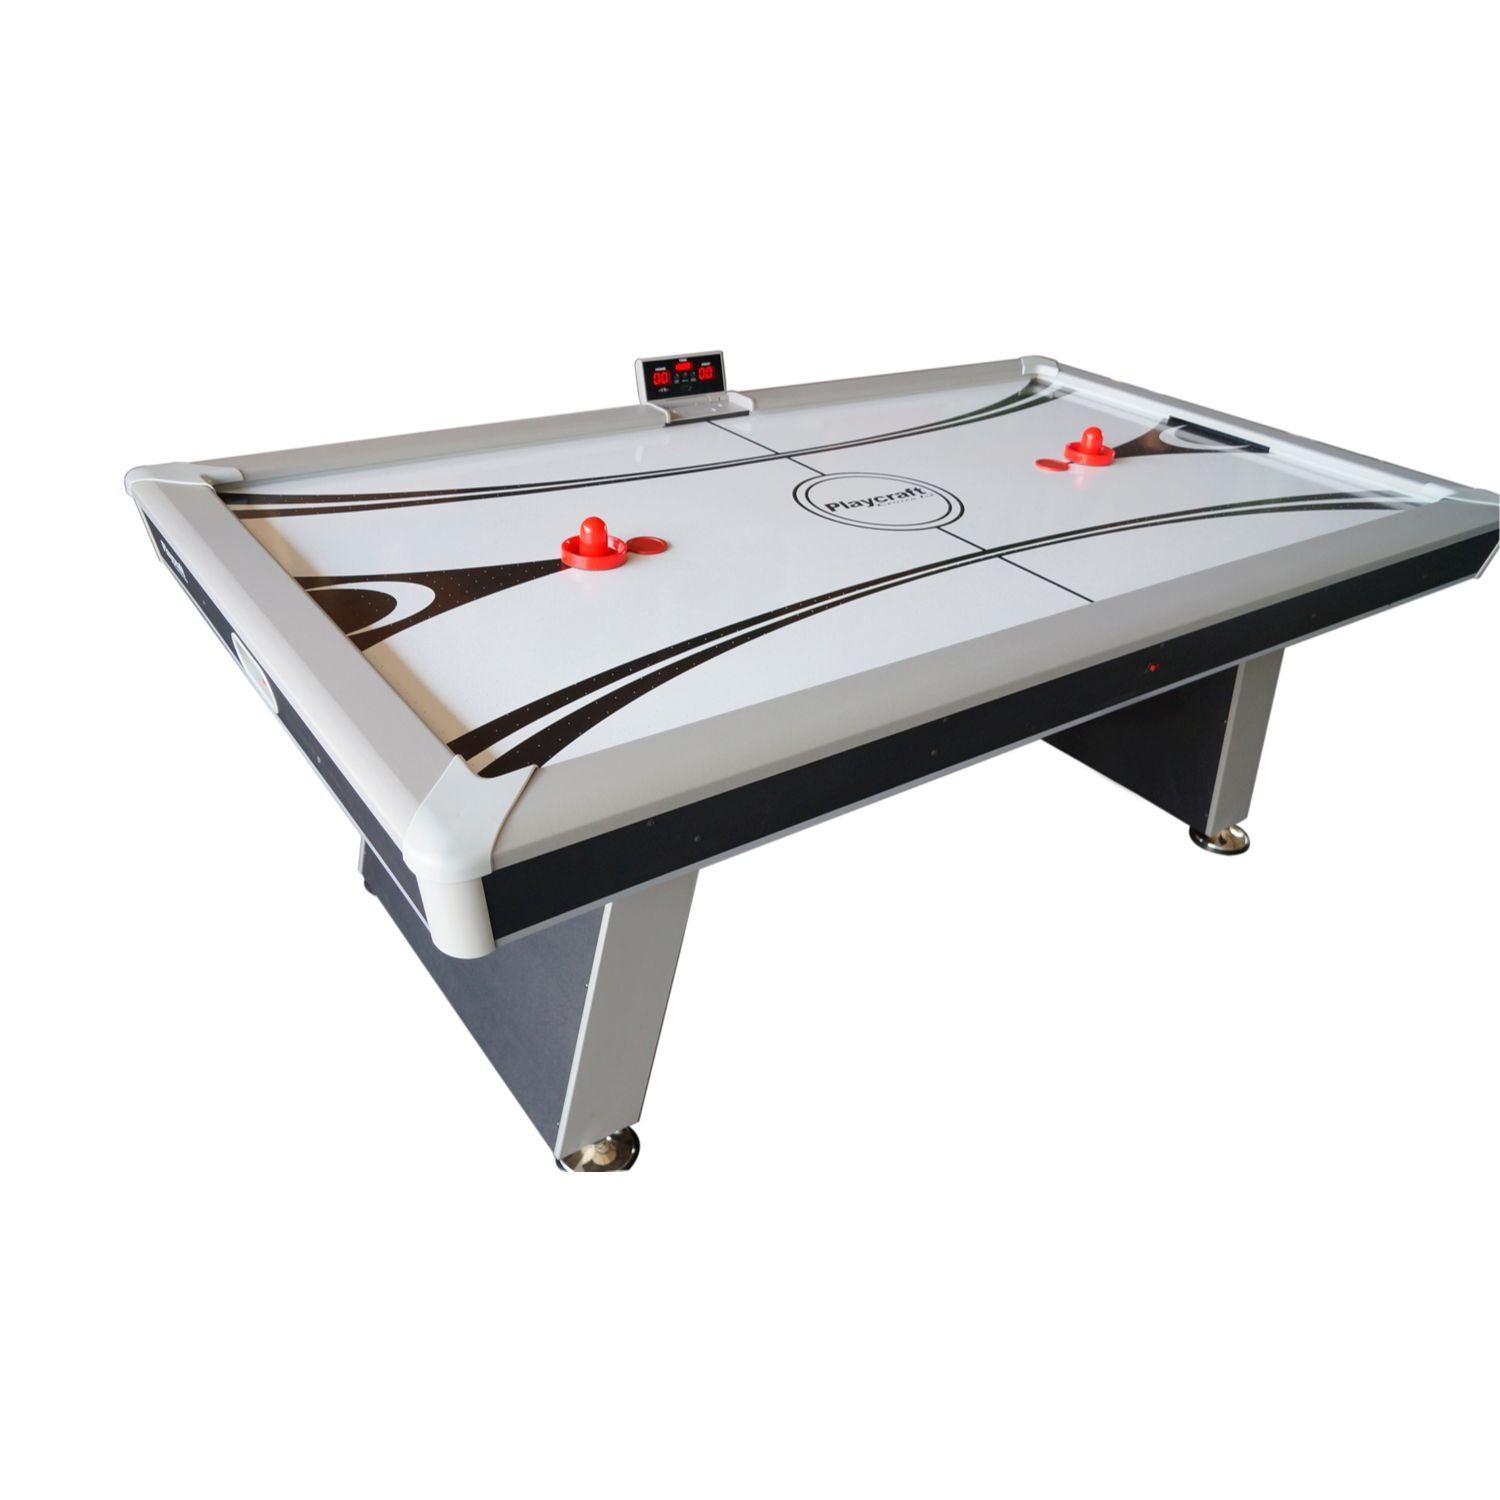 Playcraft Center Ice 7' Air Hockey Table - Gaming Blaze